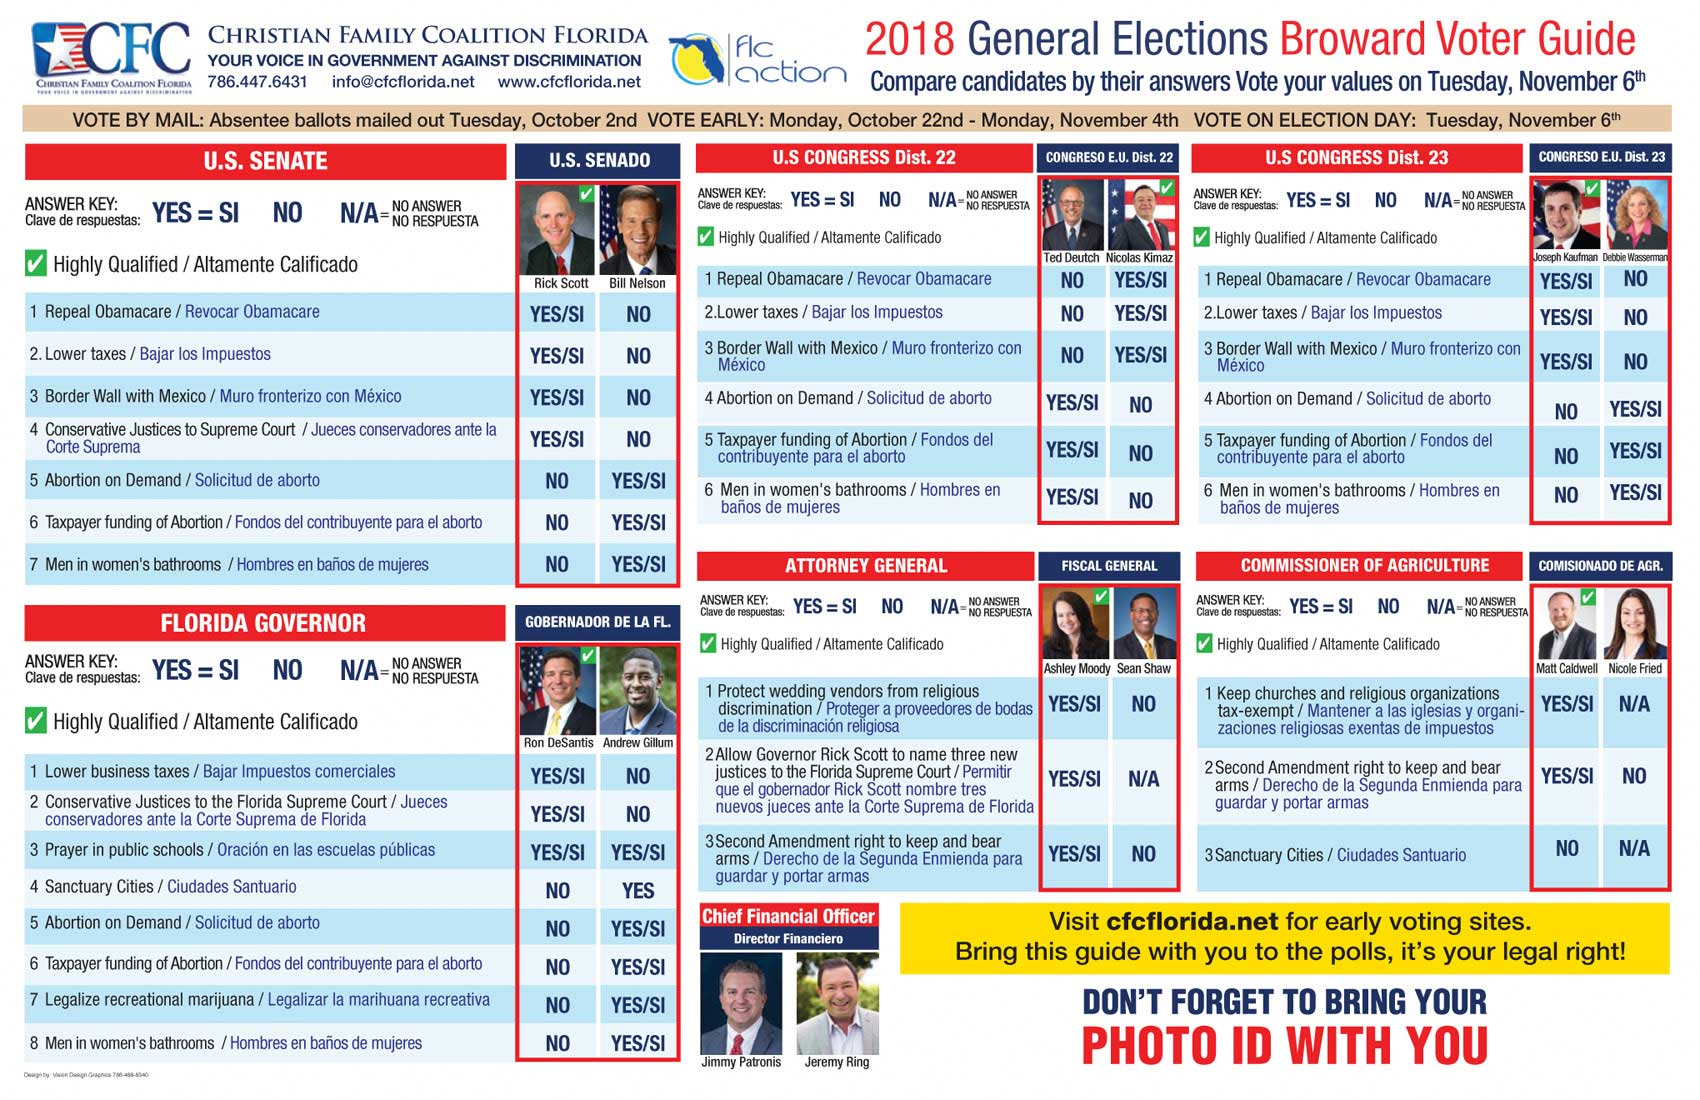 2018-broward-voter-guide_Page_1